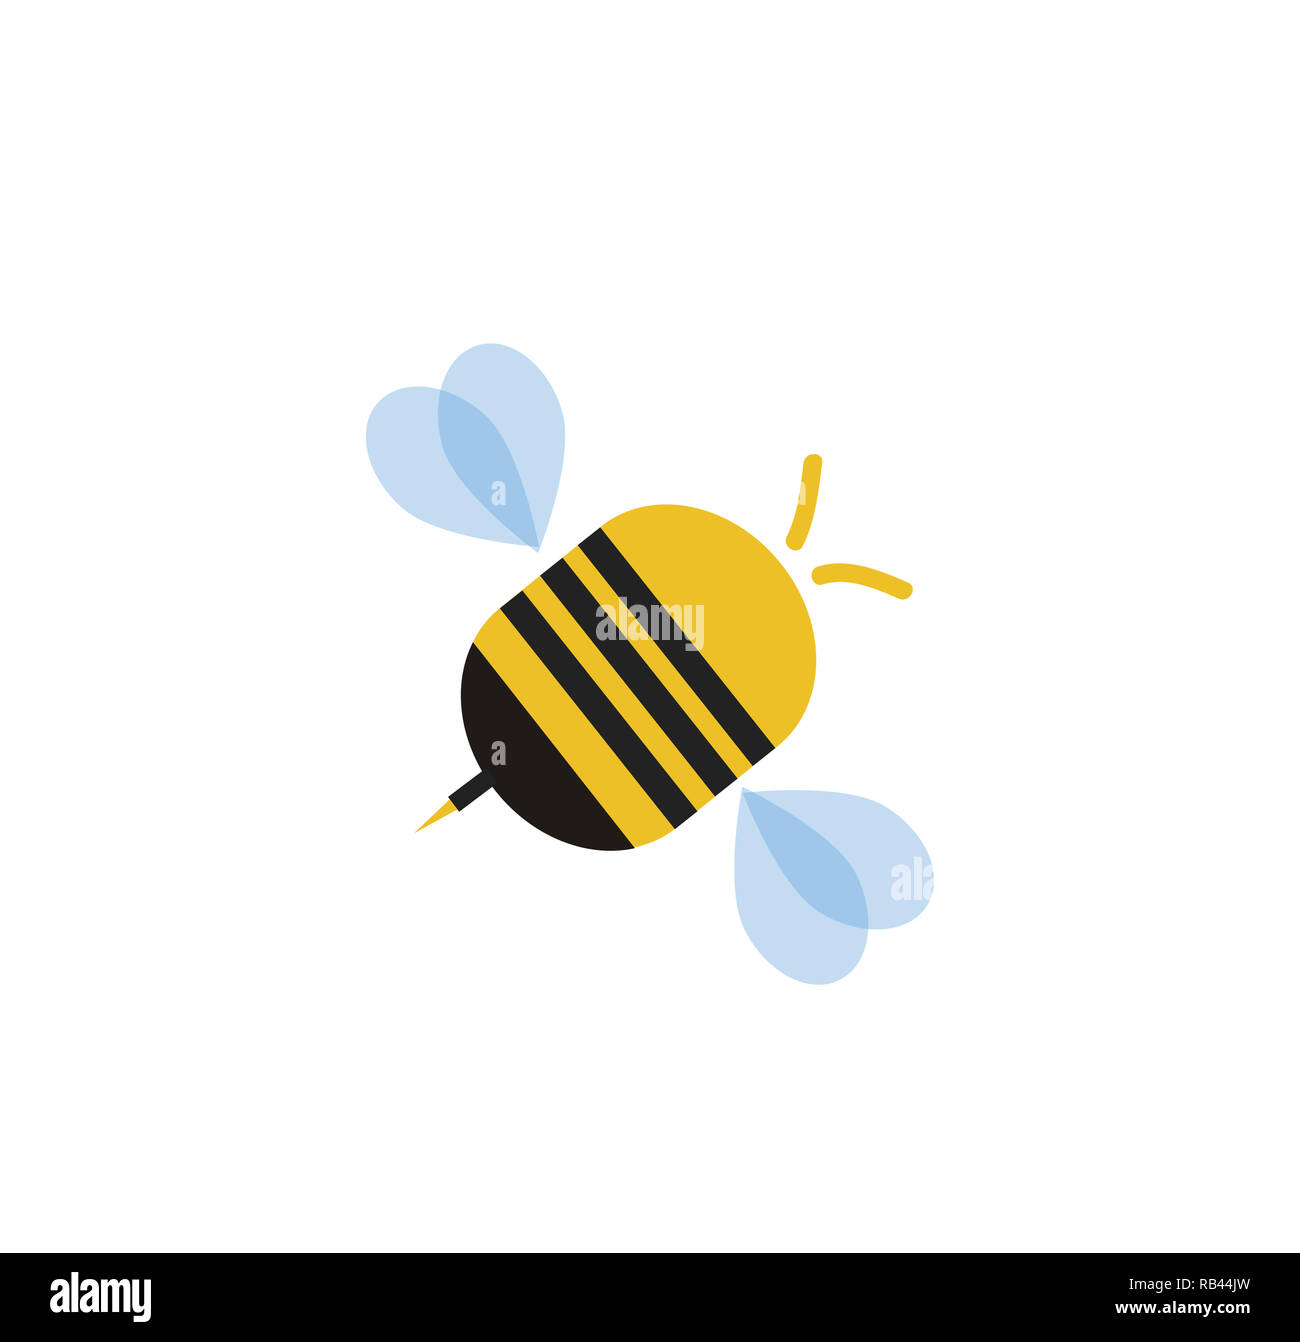 Flying cartoon bee isolati su sfondo bianco. illustrazione clip art, logo, icone per il graphic design, biglietto di auguri. Foto Stock